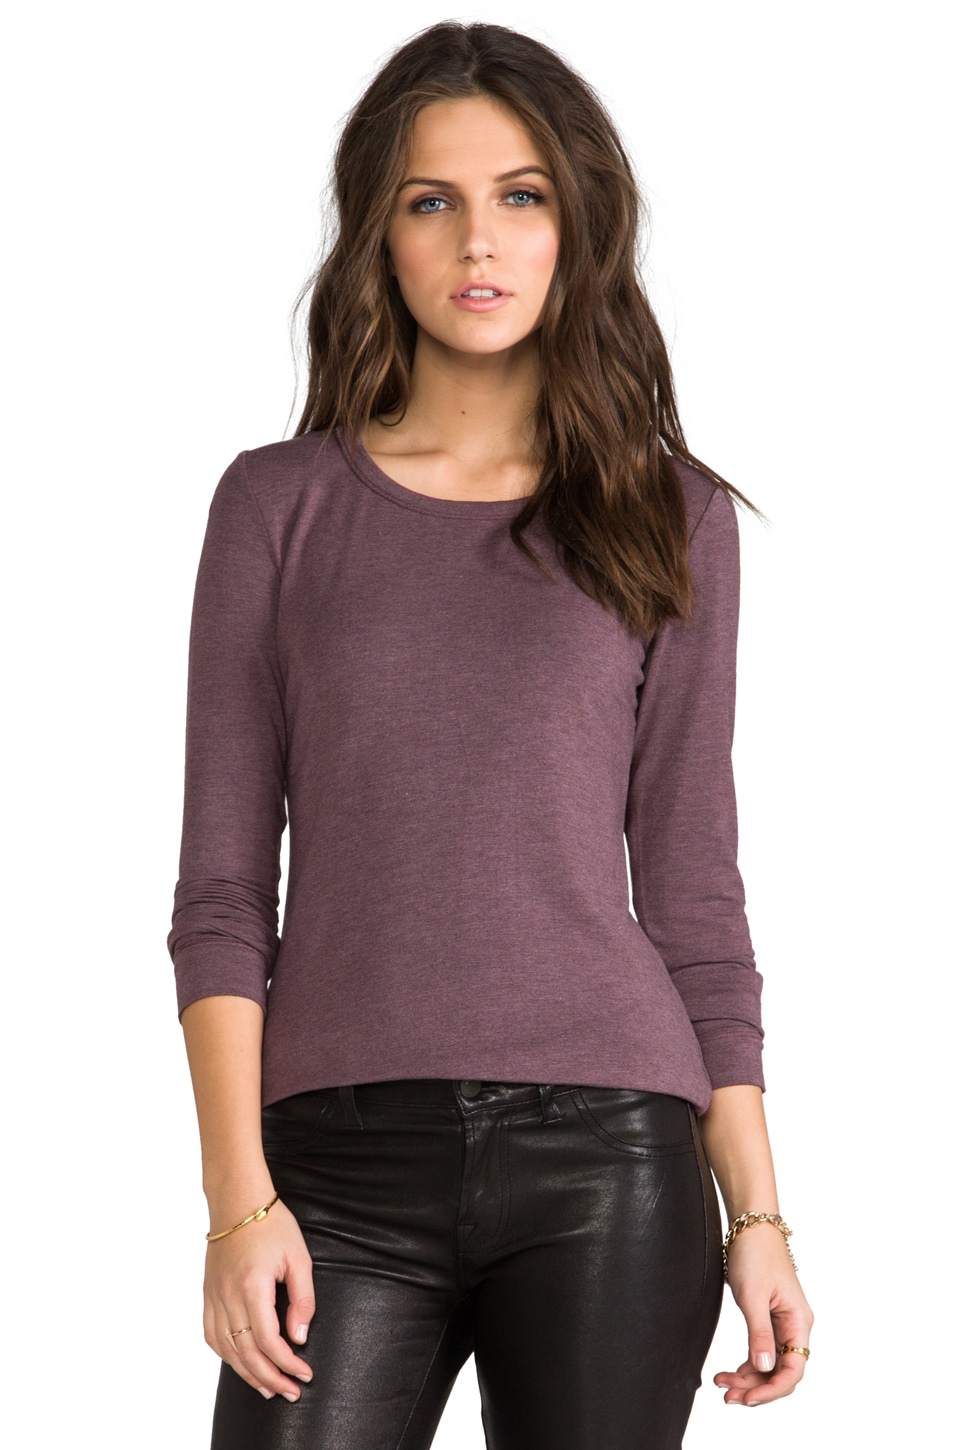 Heather Basic Long Sleeve Tee in Heather Espresso